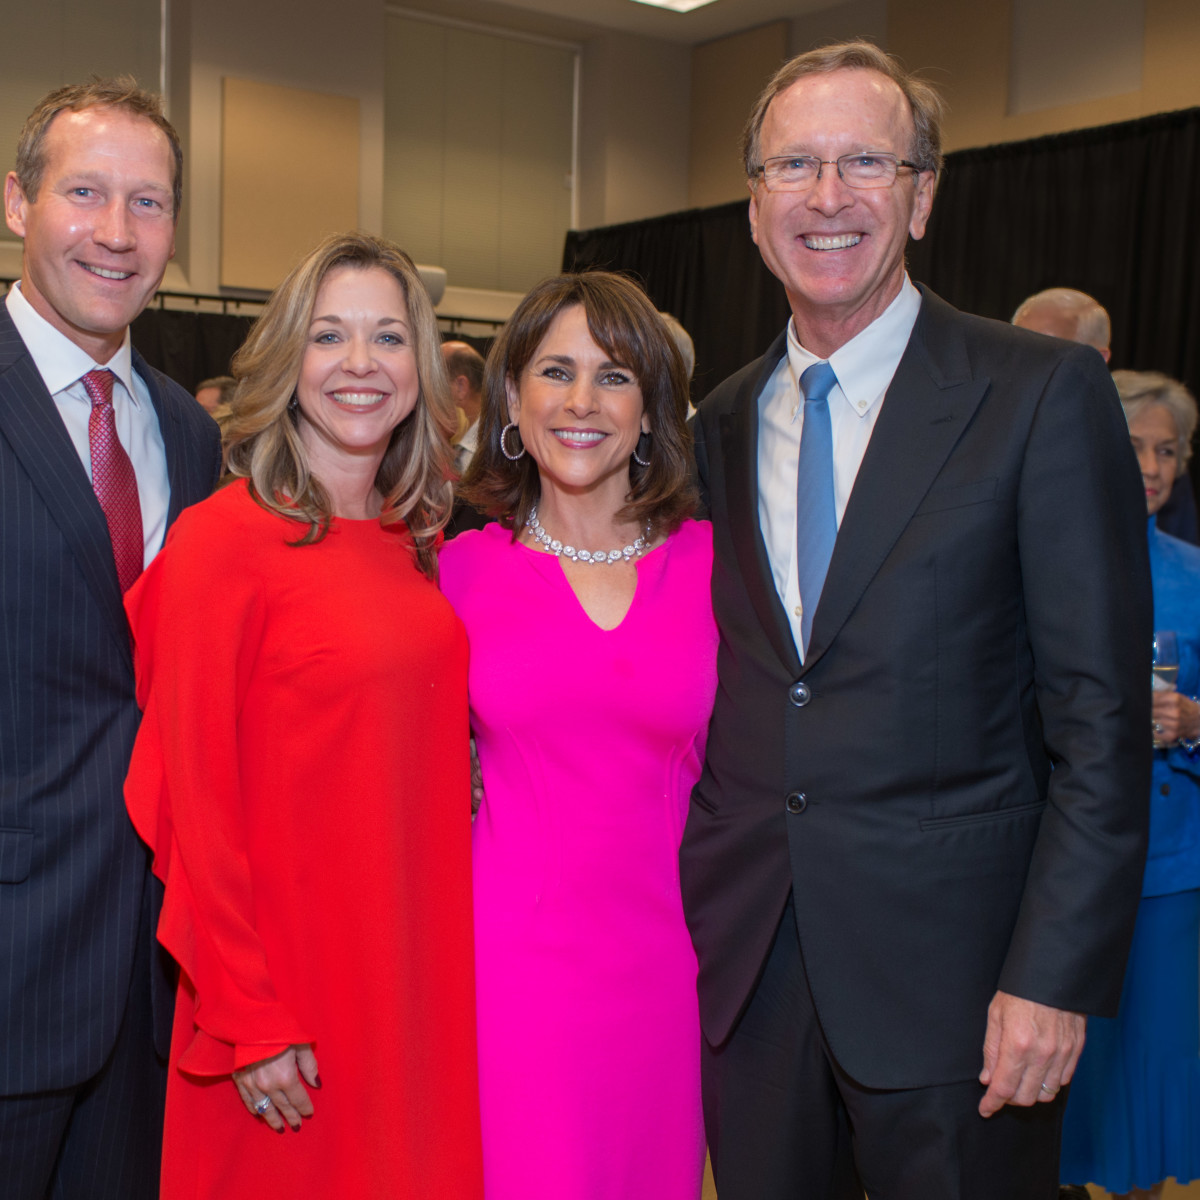 Celebration of Reading 4/16, Ron Finck, Julie Baker Finck, Maria Bush, Neil Bush